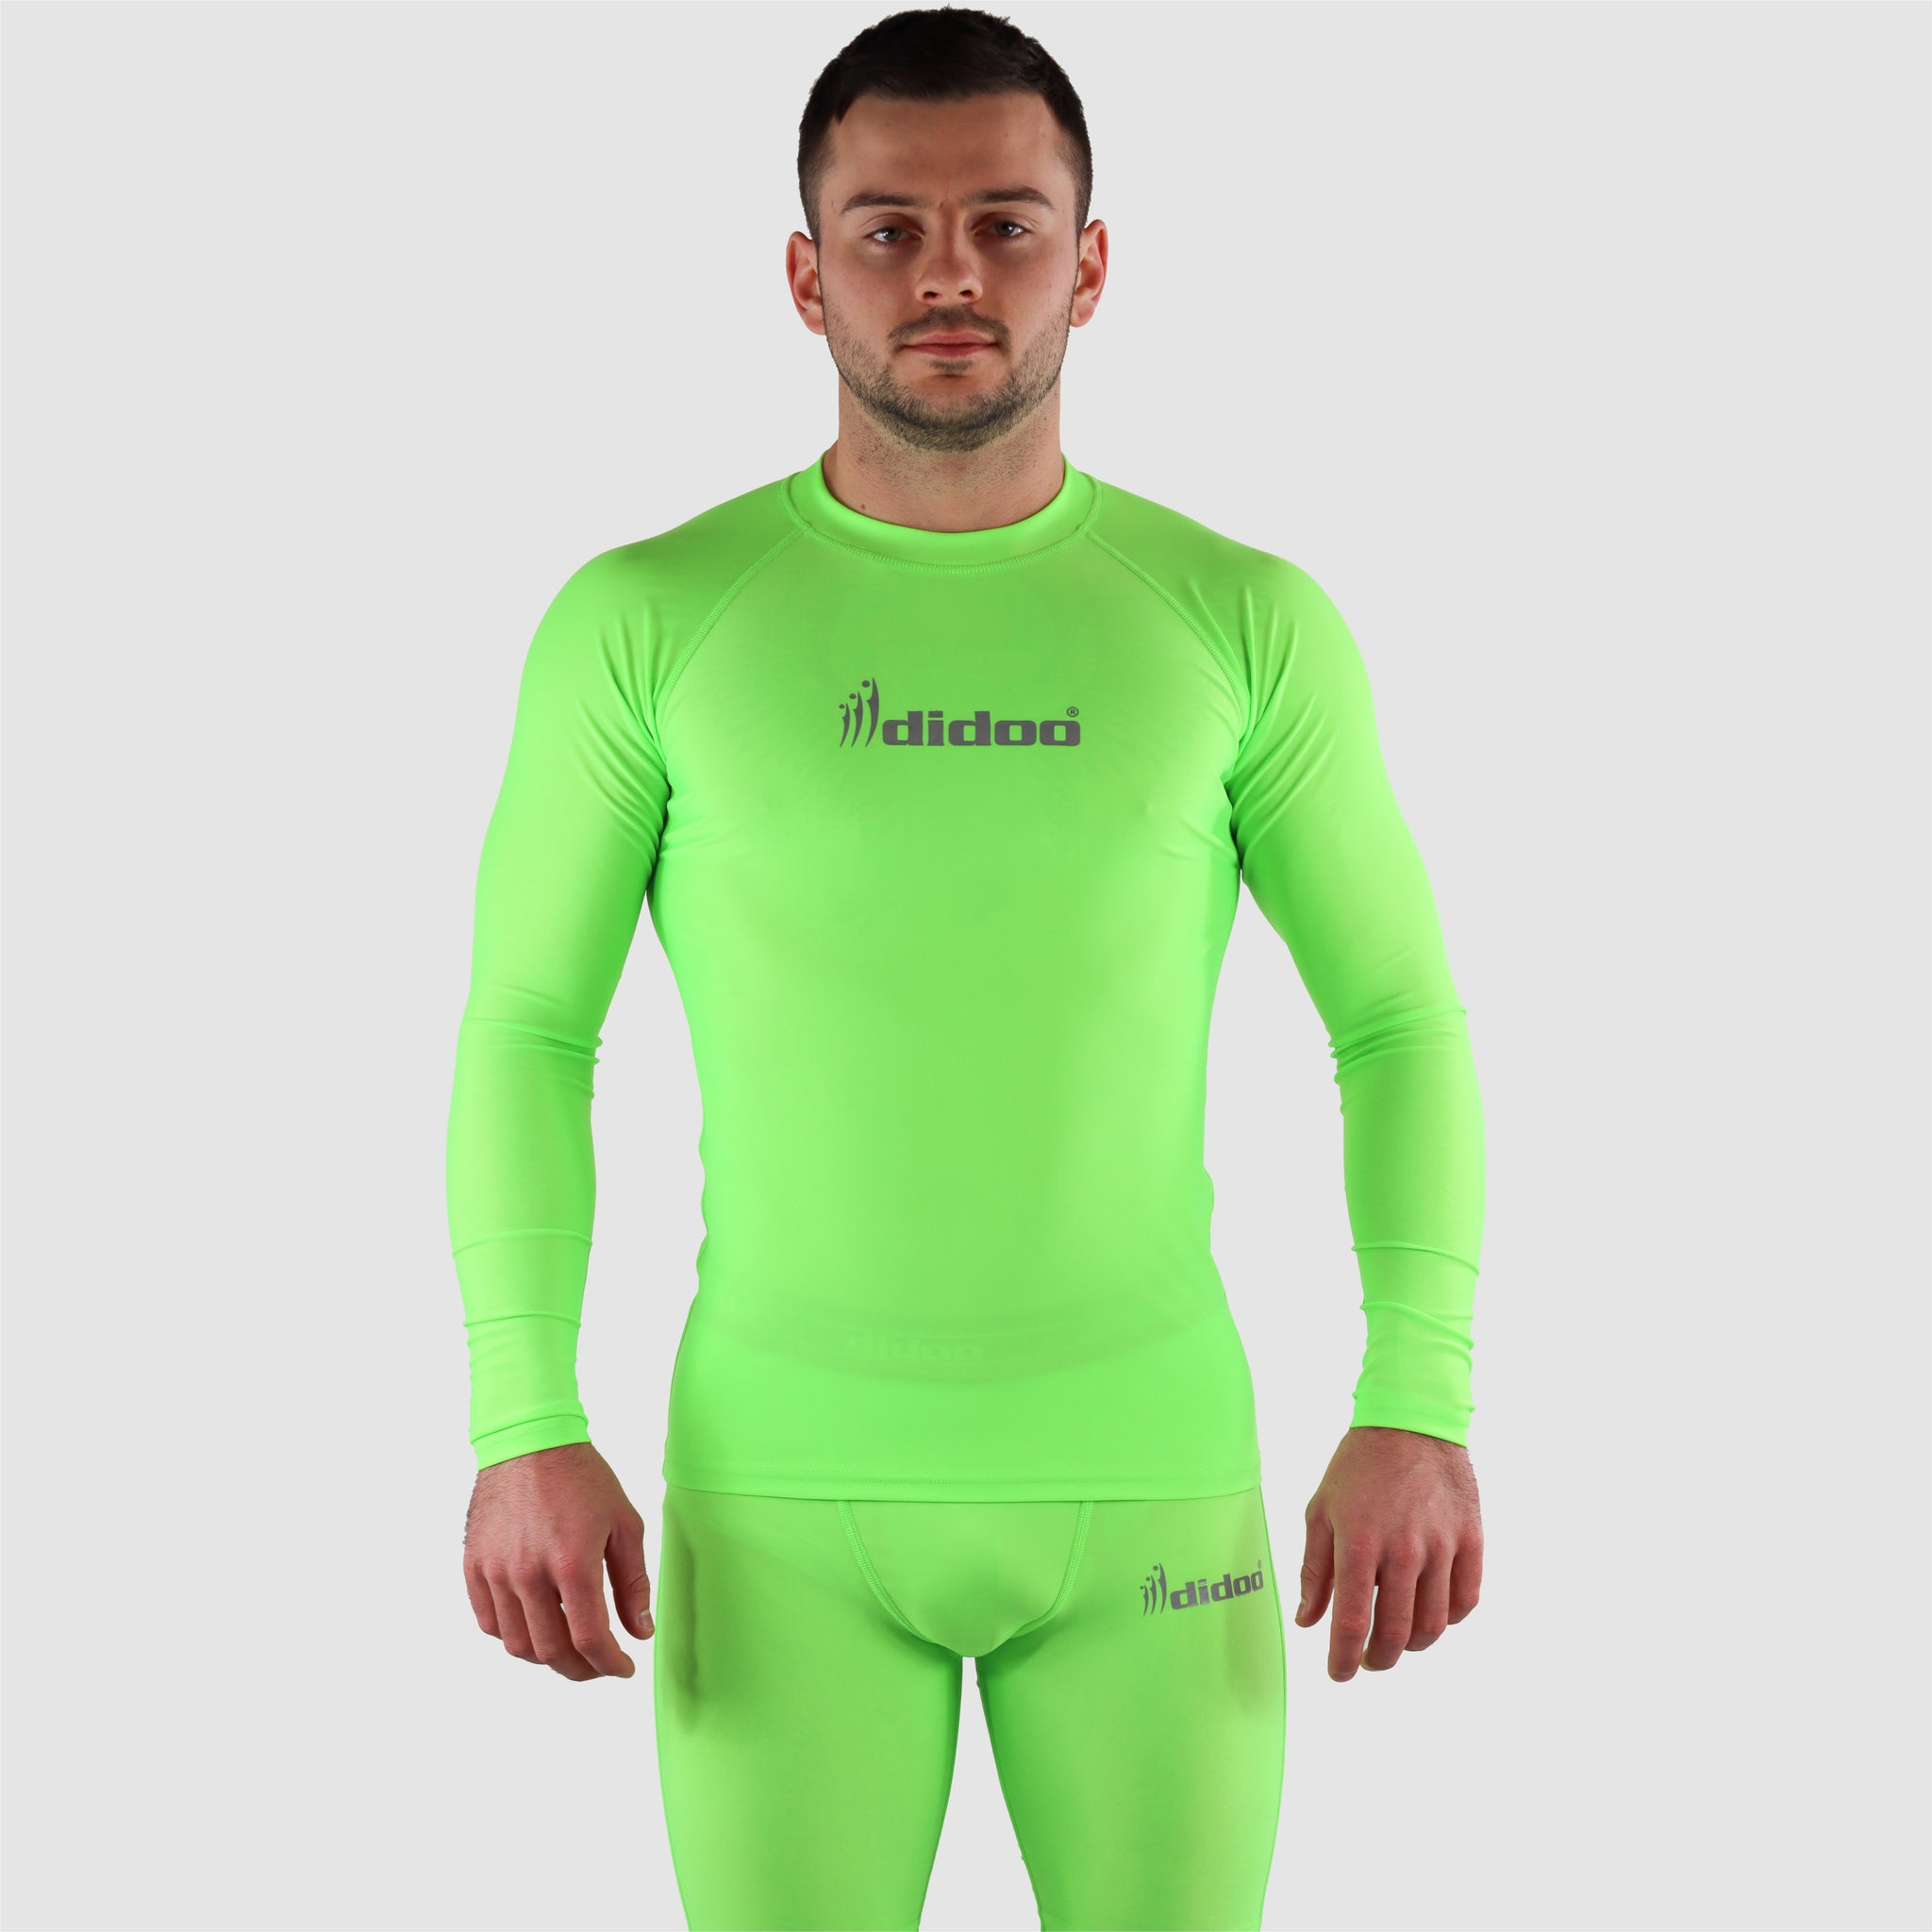 Fluorescent Green DiDOO Men's Compression Baselayer Top Long Sleeve